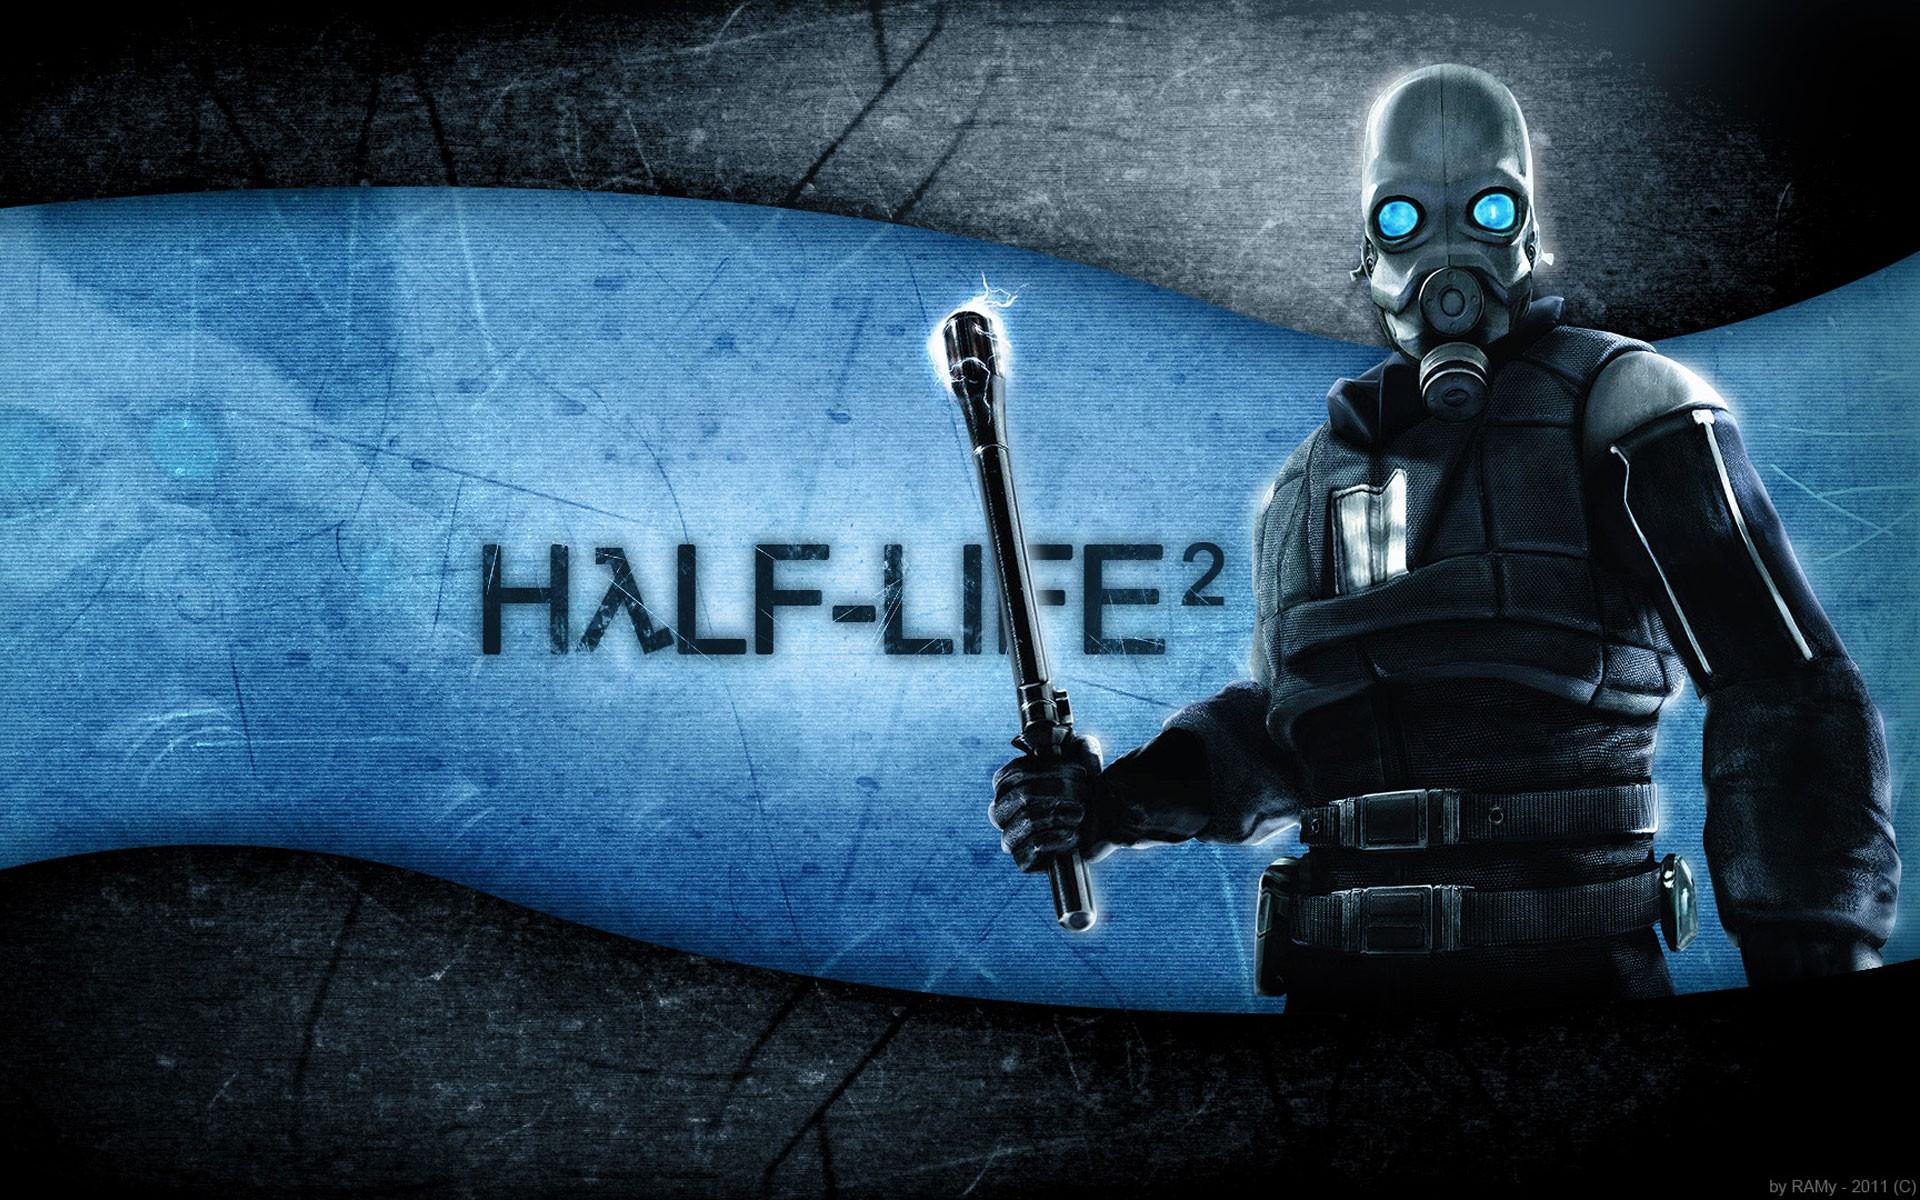 Half Life 2 wallpaper ·① Download free beautiful full HD